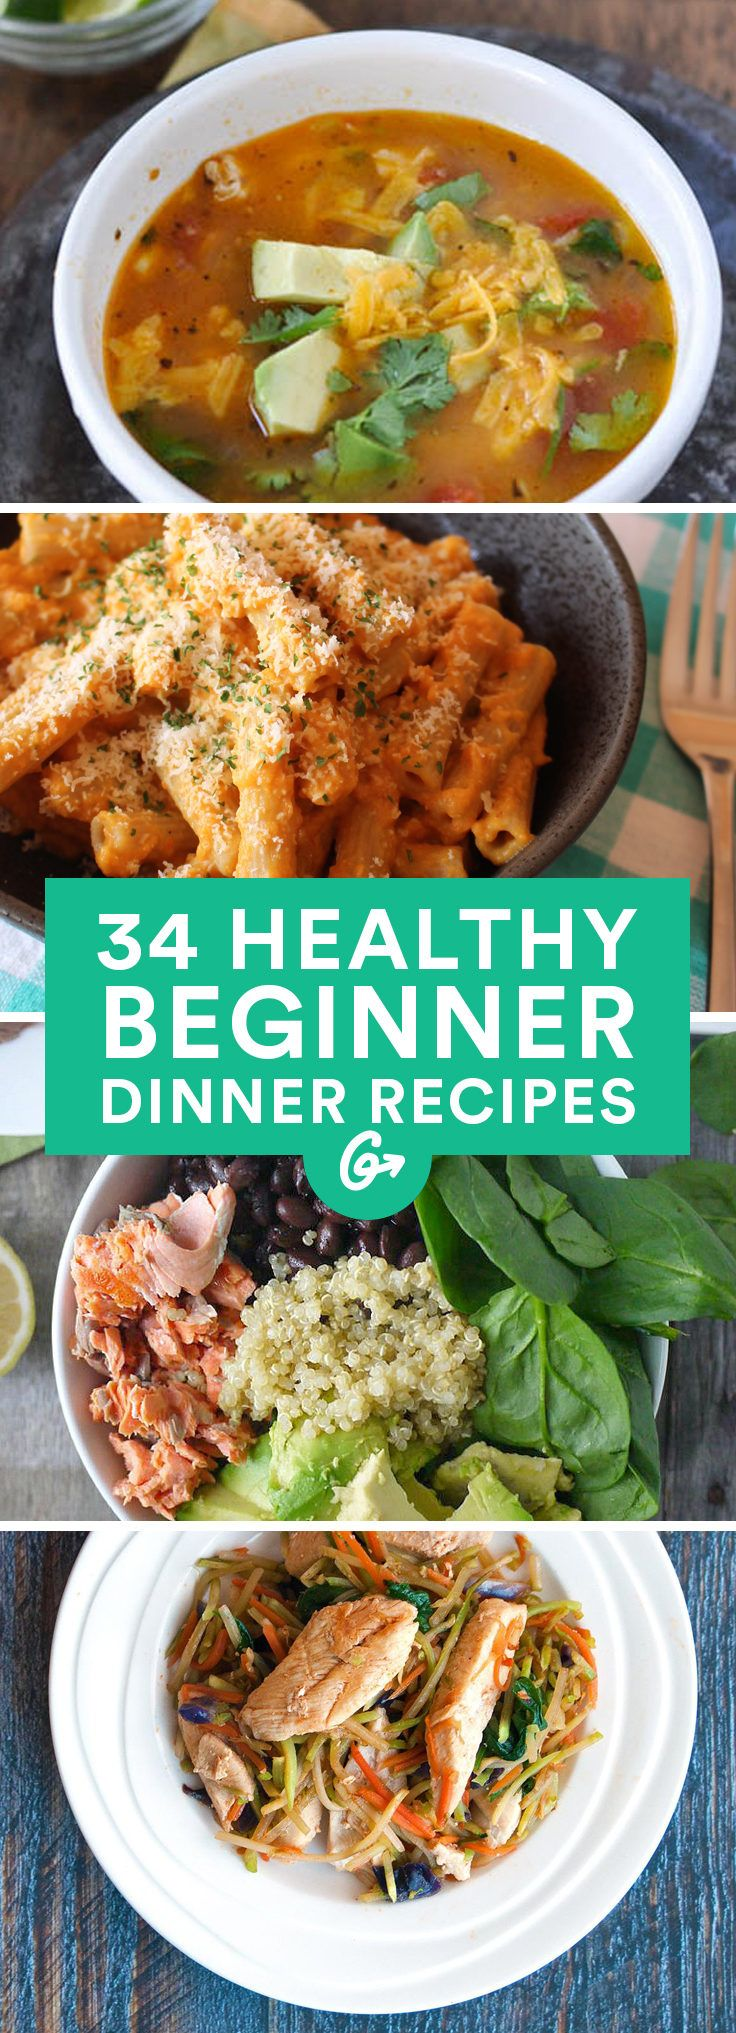 22 best Paleo diet images on Pinterest   Clean eating meals, Cooking ...